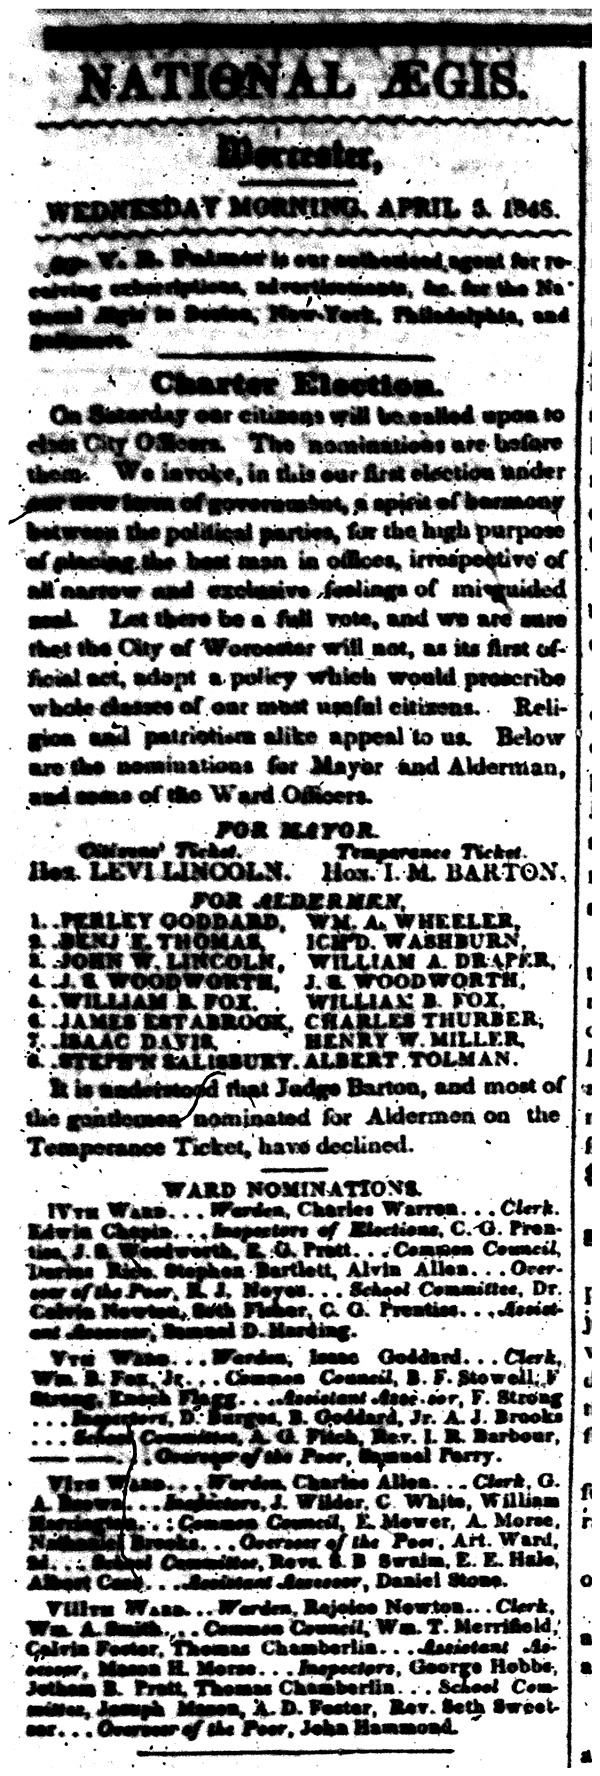 List of candidates in the city's first election published April 5, 1848 in the National Aegis.